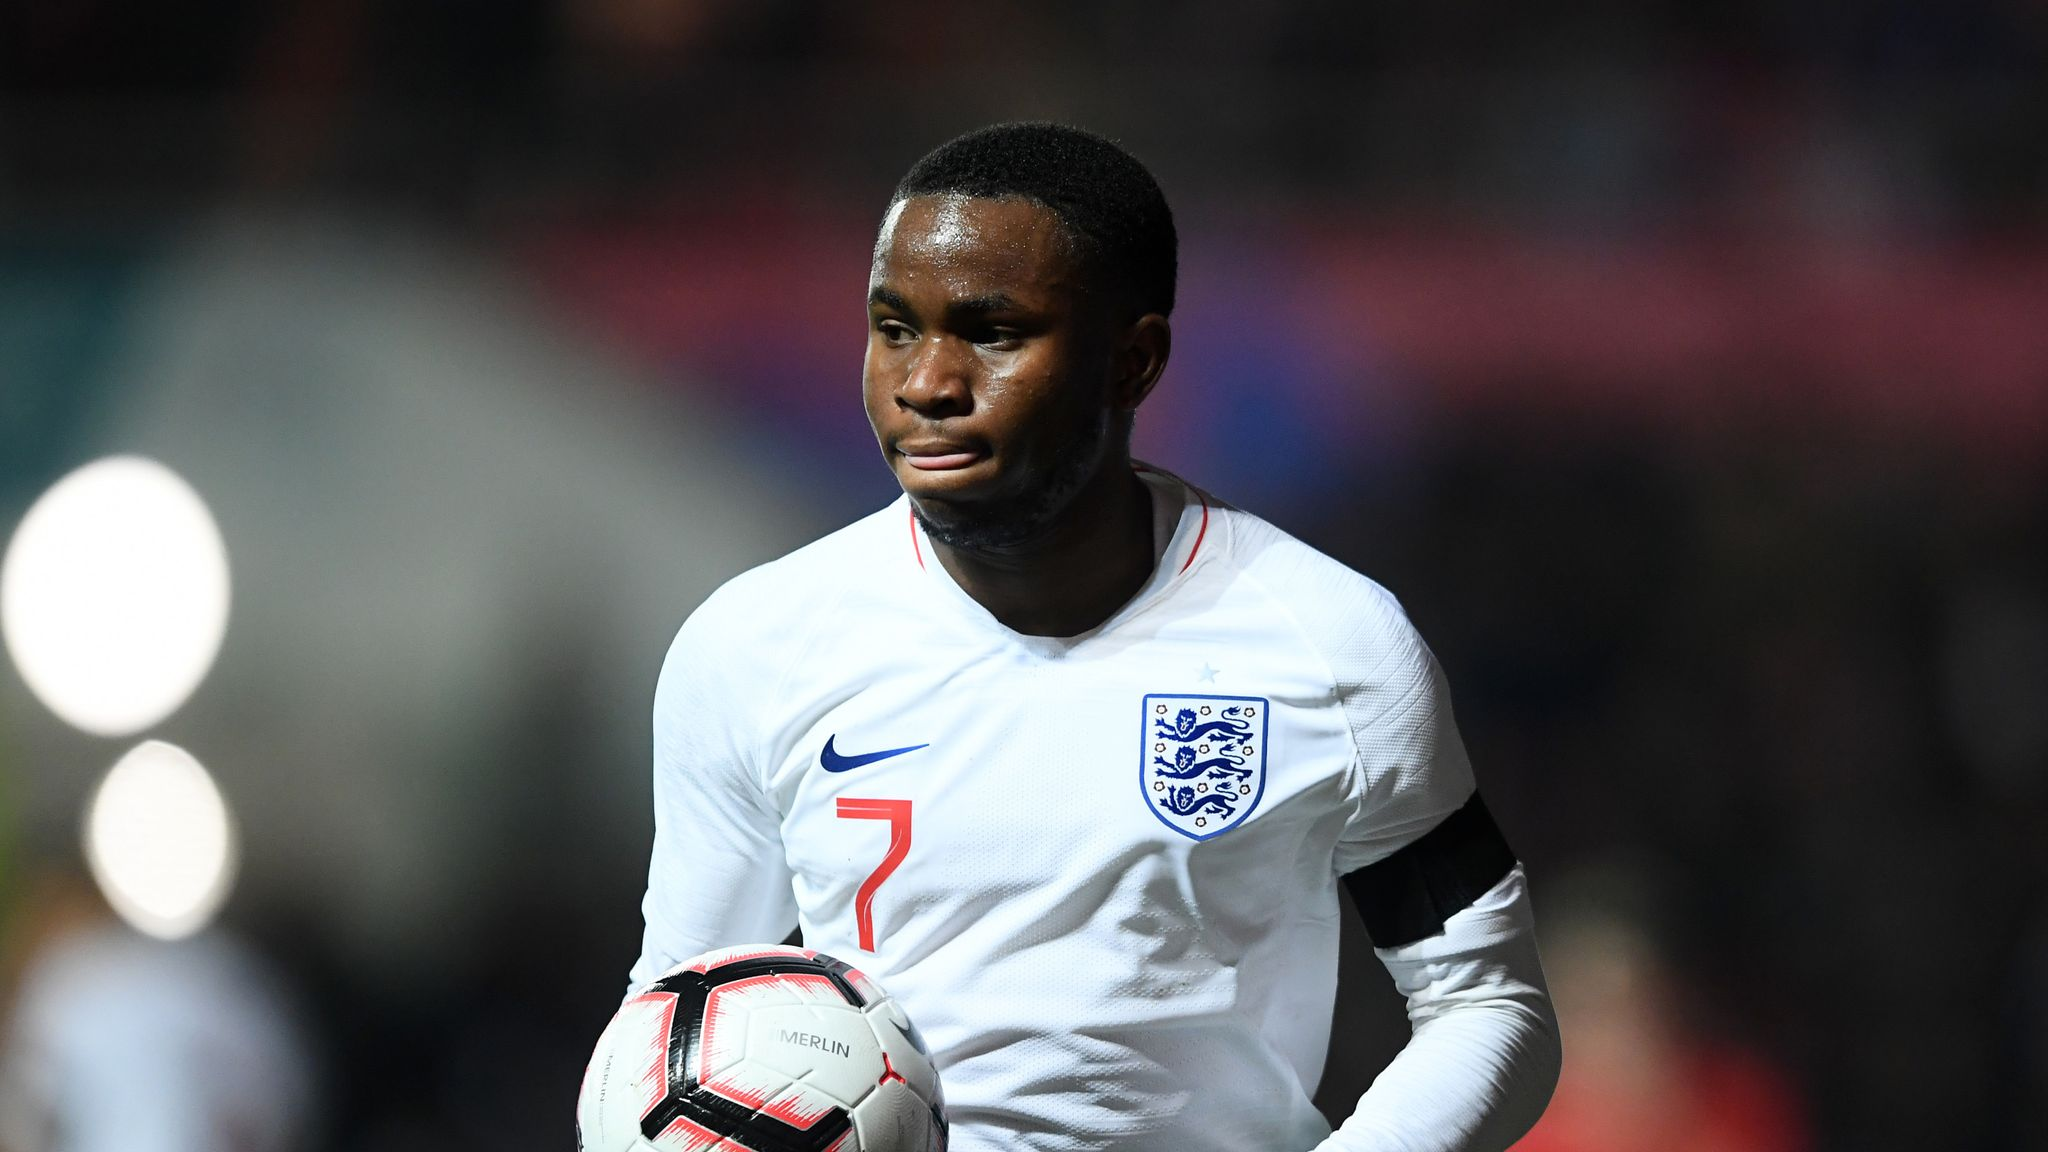 Lookman, Ejaria Still Waiting For FIFA's Clearances In Switch To Nigeria